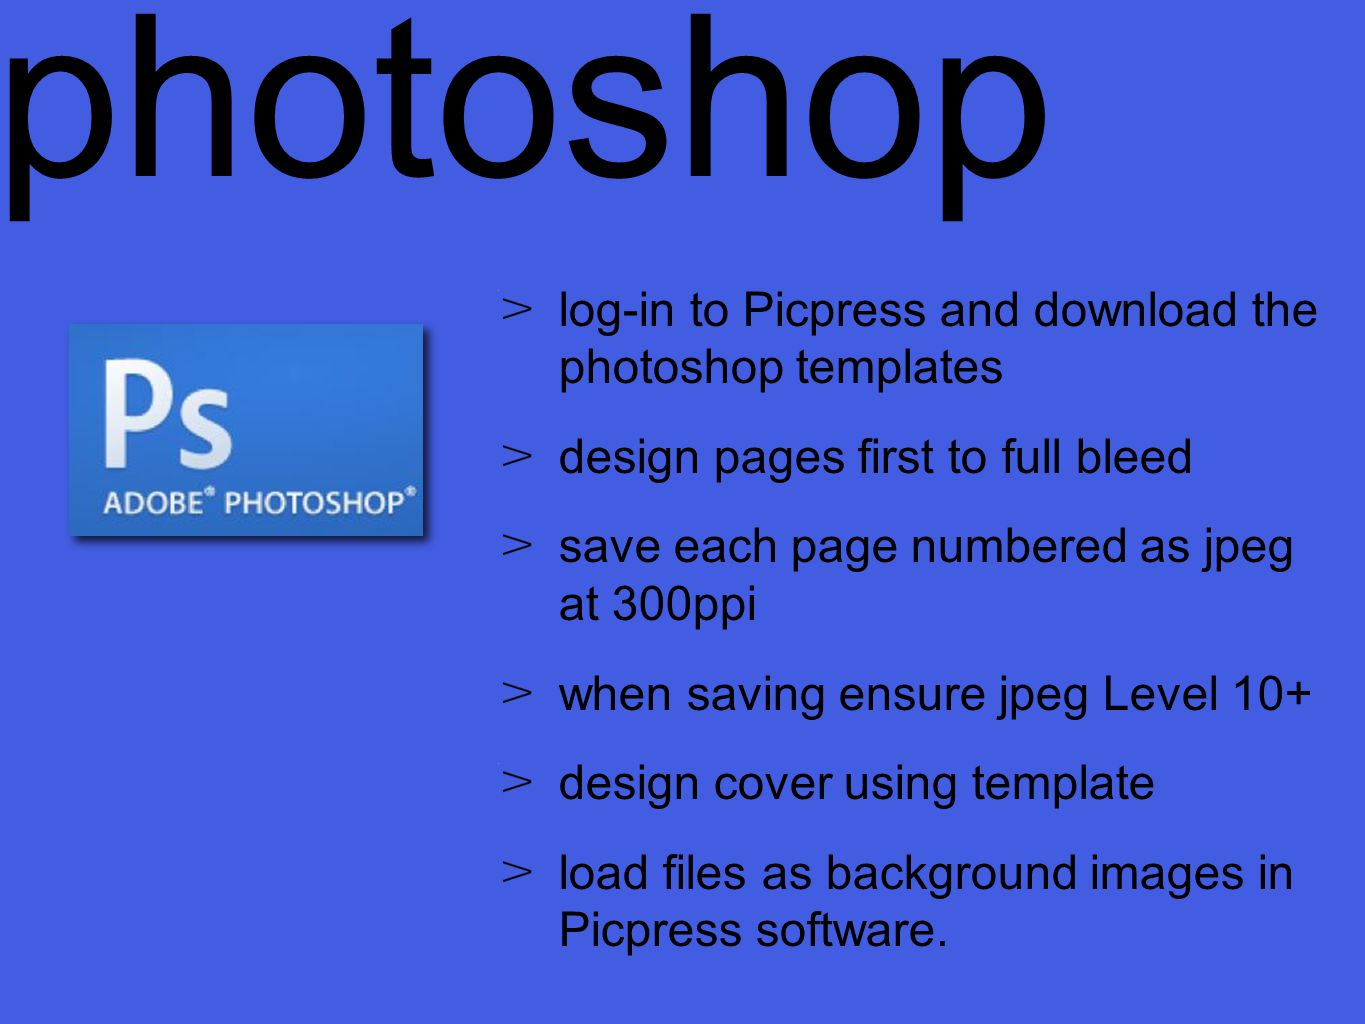 log-in to Picpress and download the photoshop templates design pages first to full bleed save each page numbered as jpeg at 300ppi when saving ensure jpeg Level 10+ design cover using template load files as background images in Picpress software.